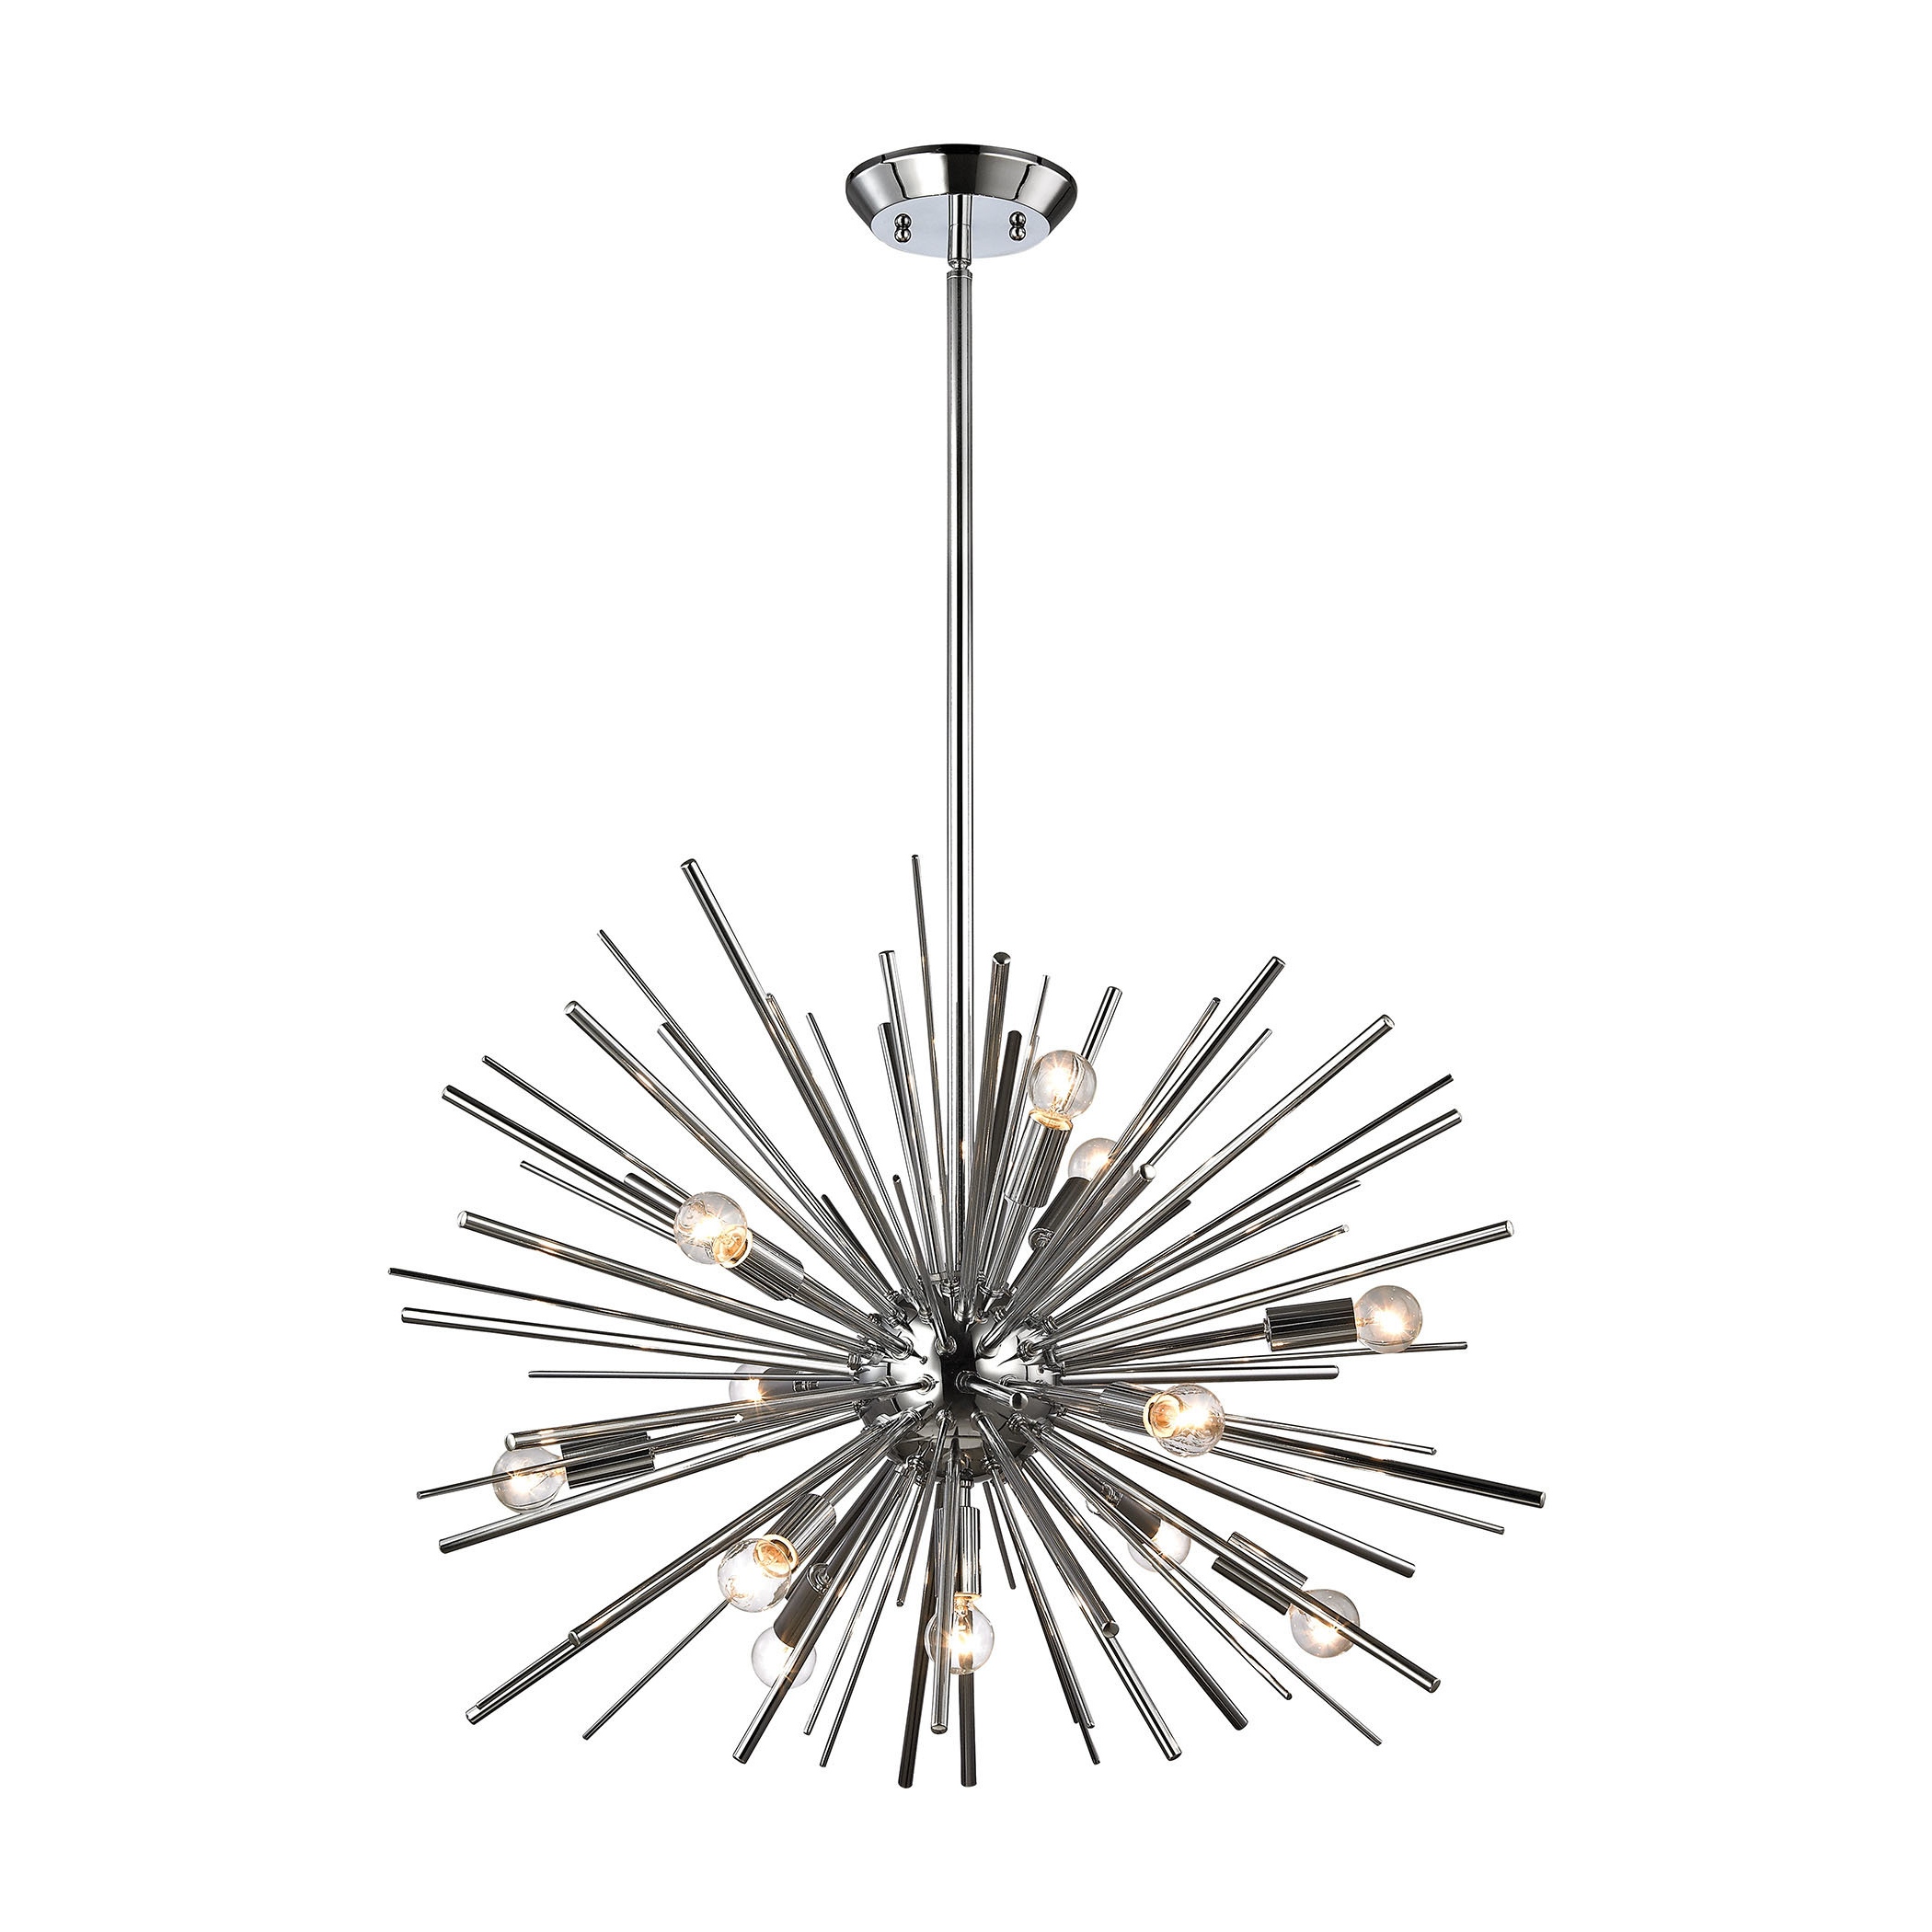 Most Popular Elinore 12 Light Sputnik Chandelier With Nelly 12 Light Sputnik Chandeliers (View 6 of 20)